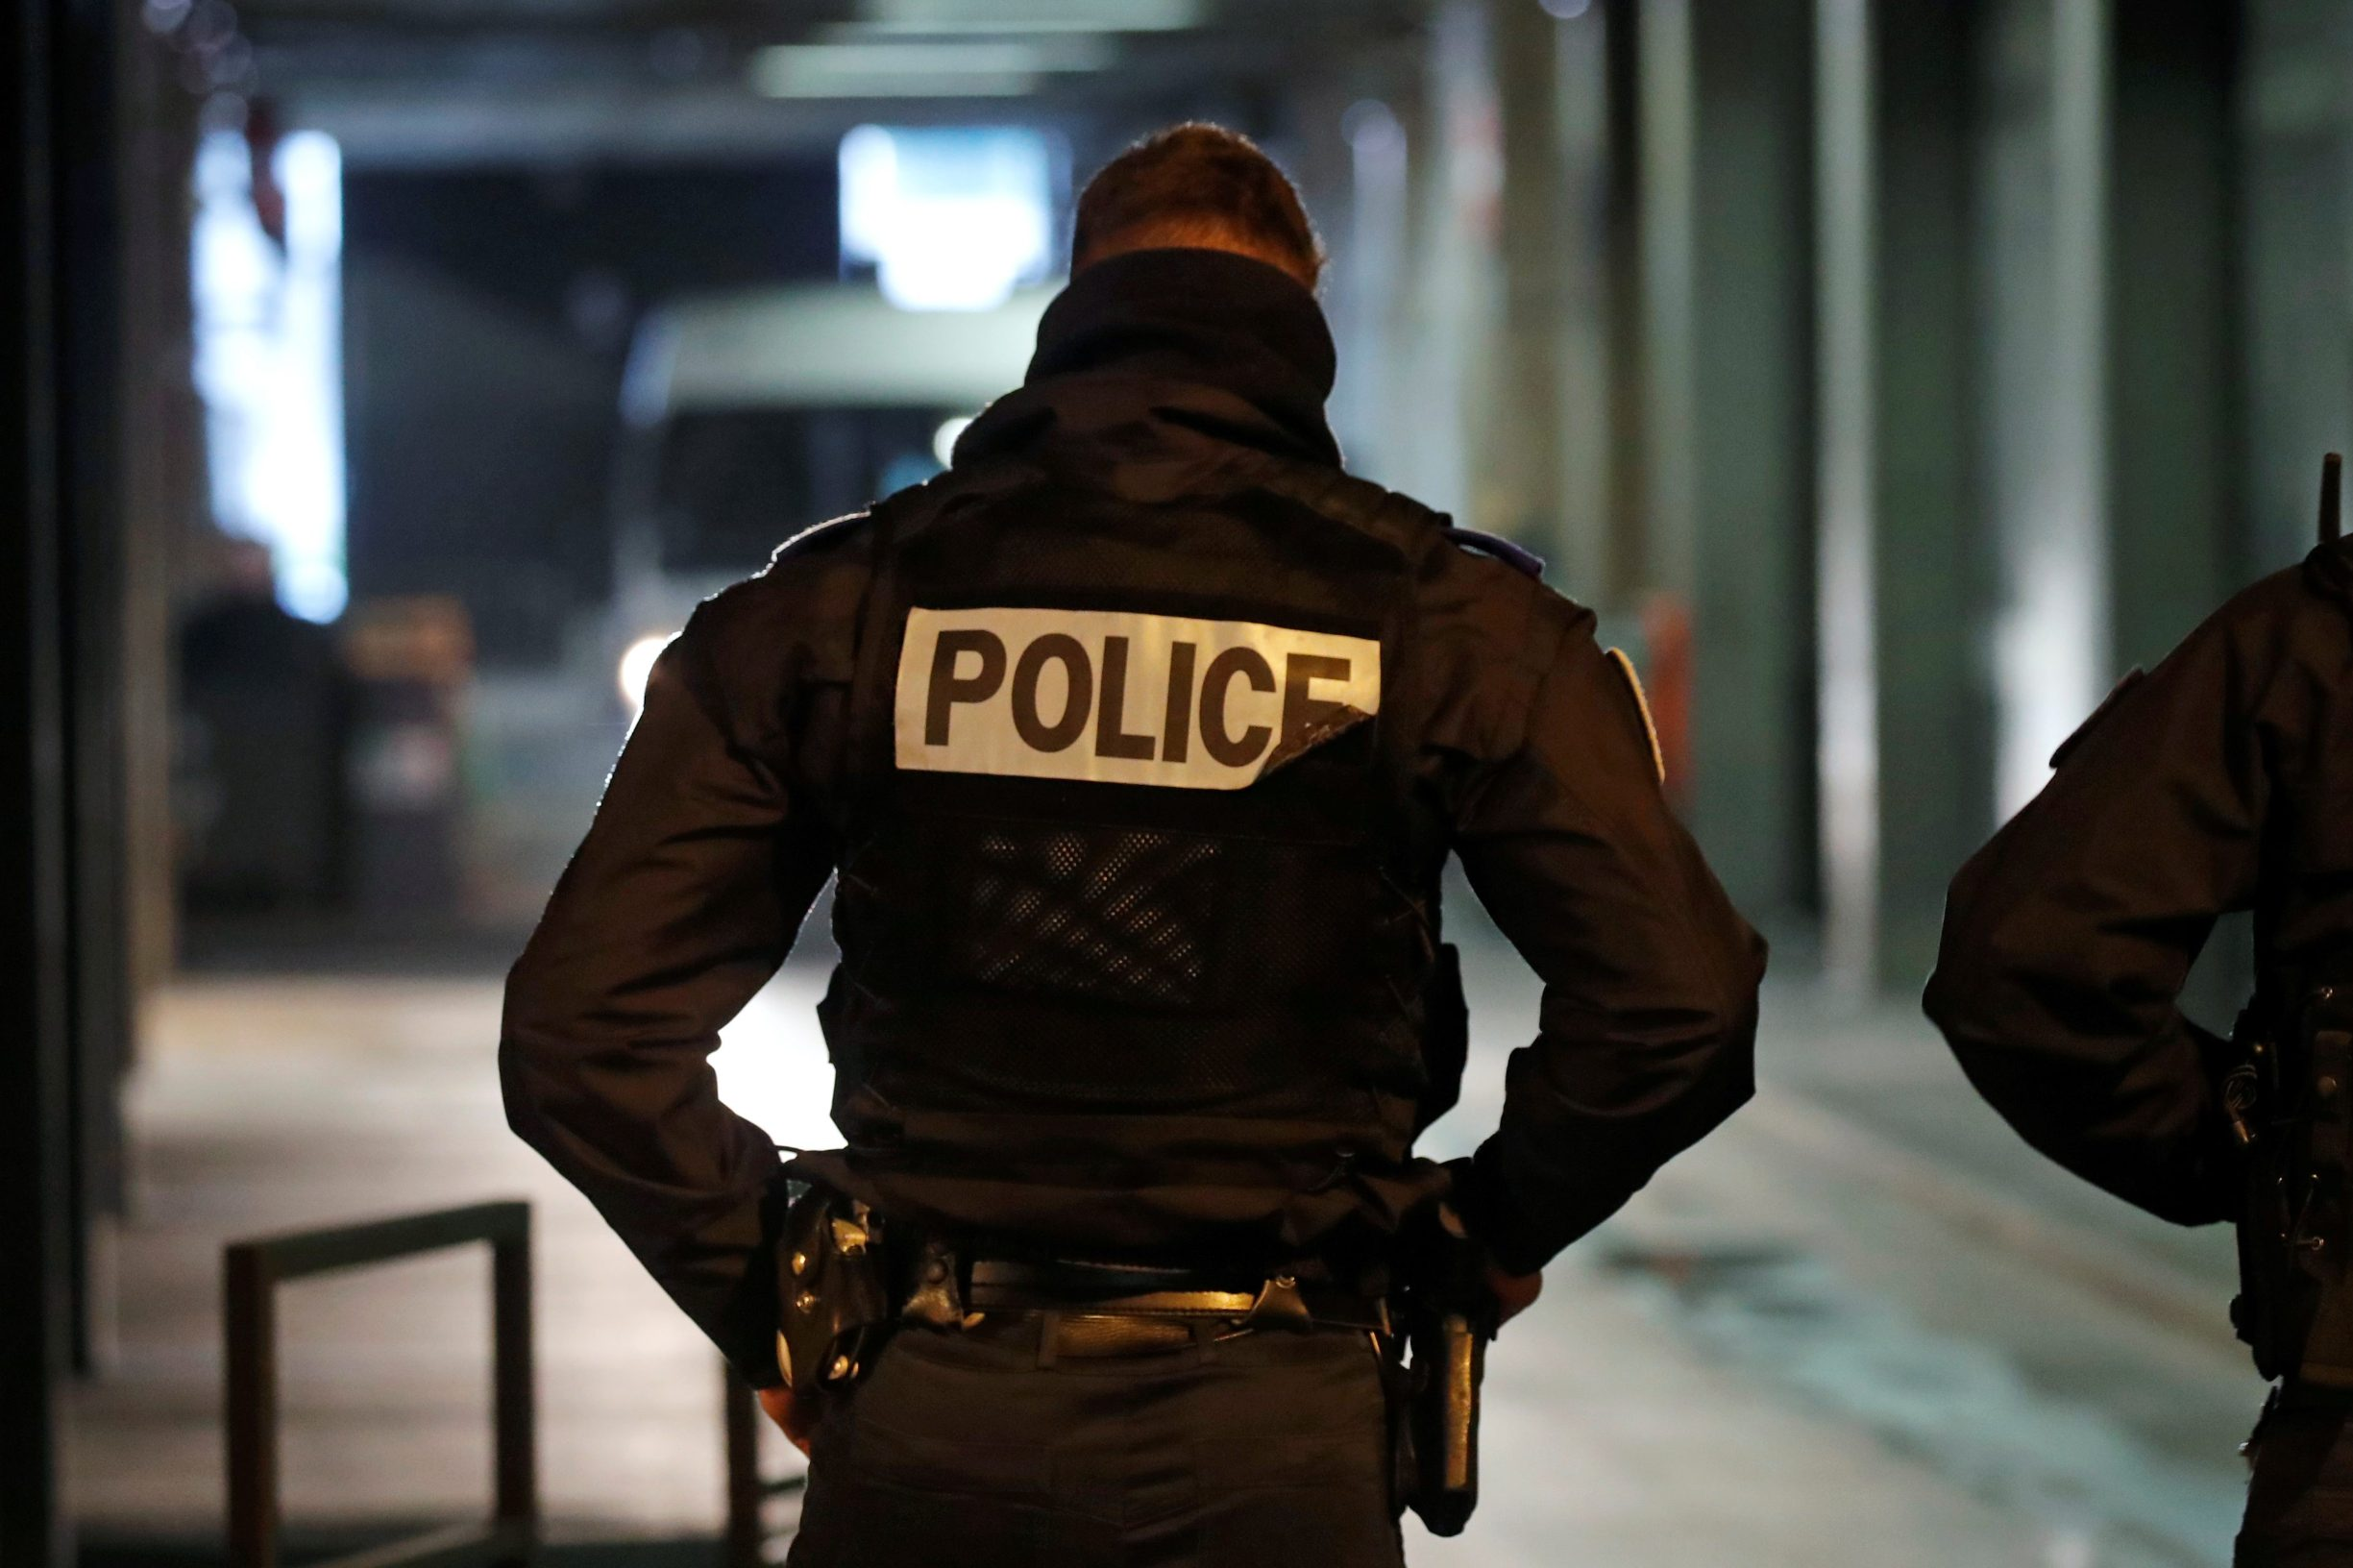 2019-12-13T113318Z_1855915594_RC2BUD9GTRZK_RTRMADP_3_FRANCE-SECURITY